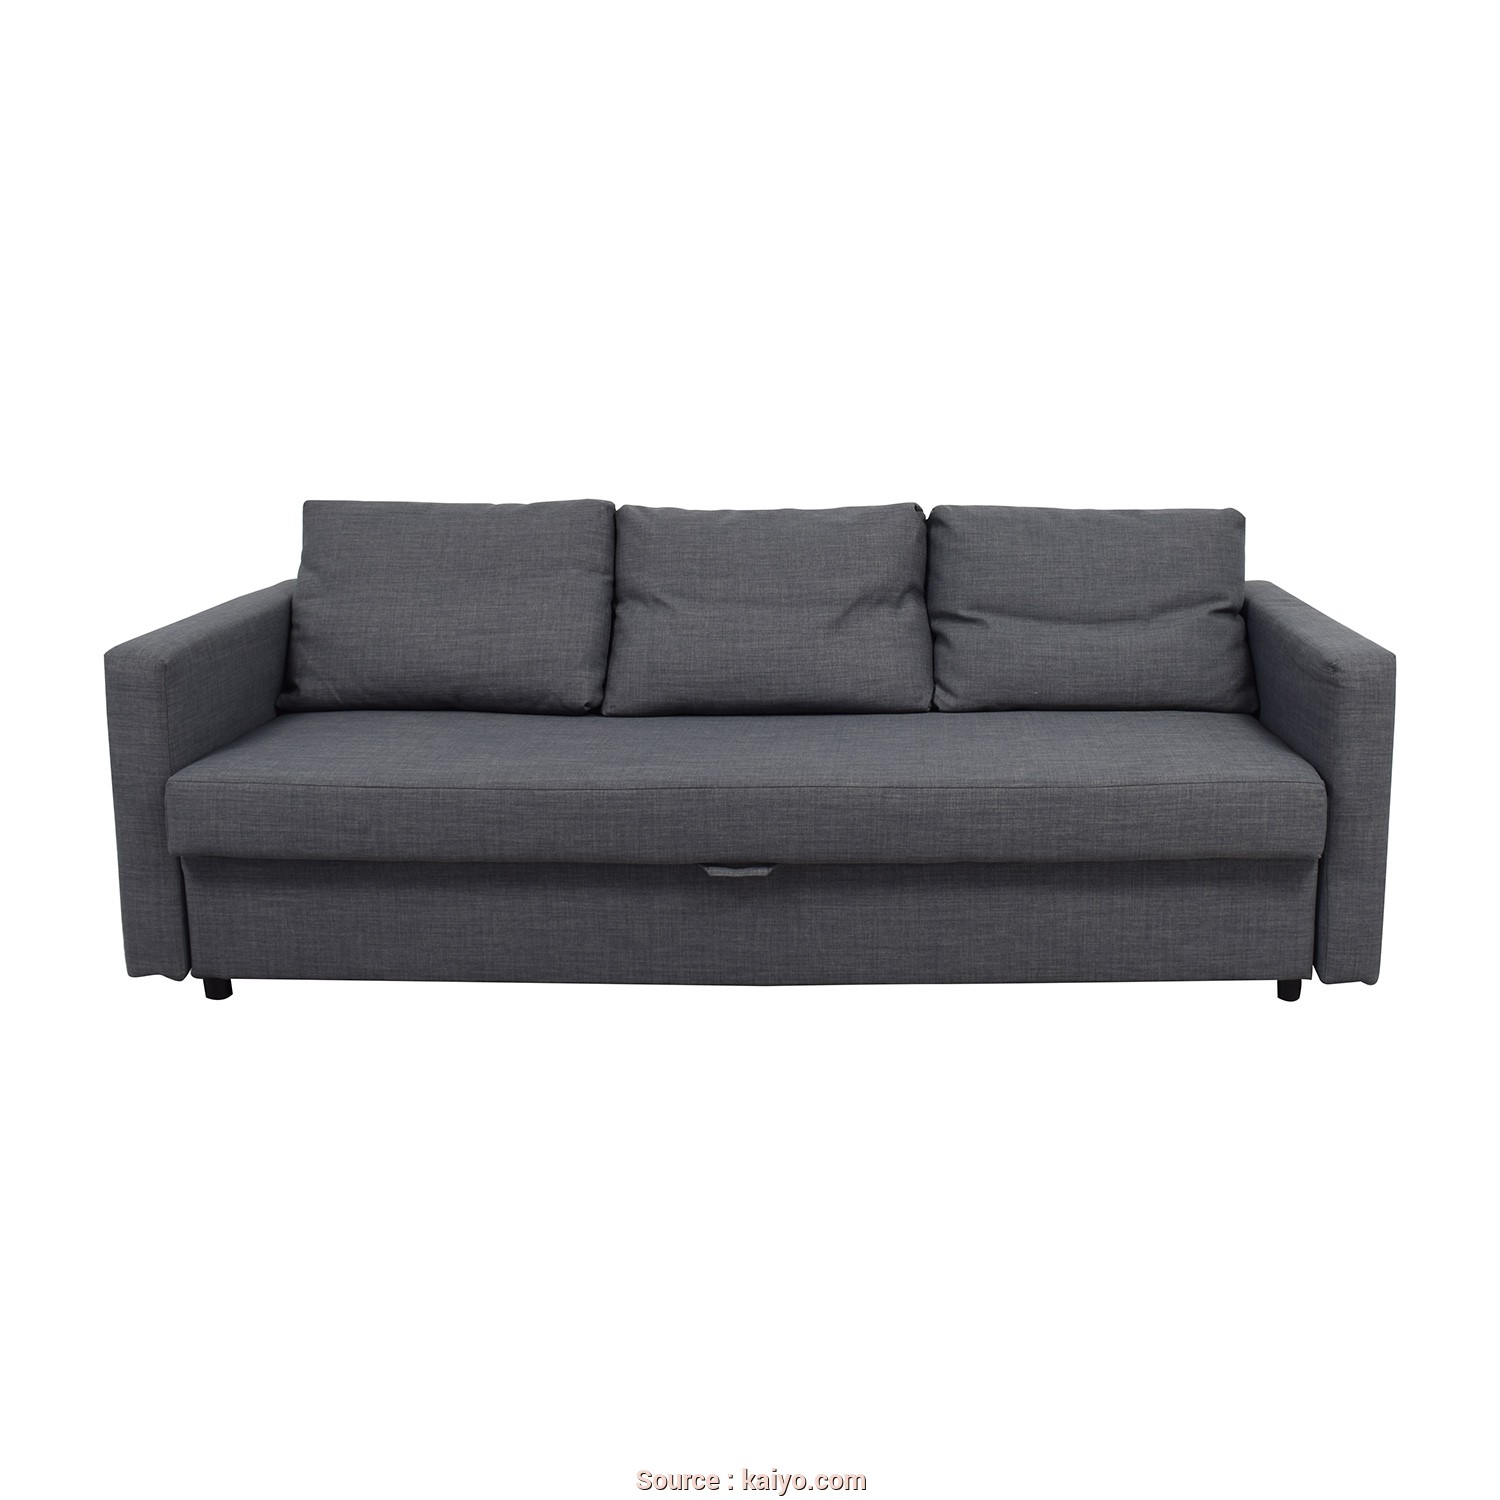 Ikea Futon Couch, Bello Shop IKEA FRIHETEN Grey Sleeper Sofa IKEA Classic Sofas